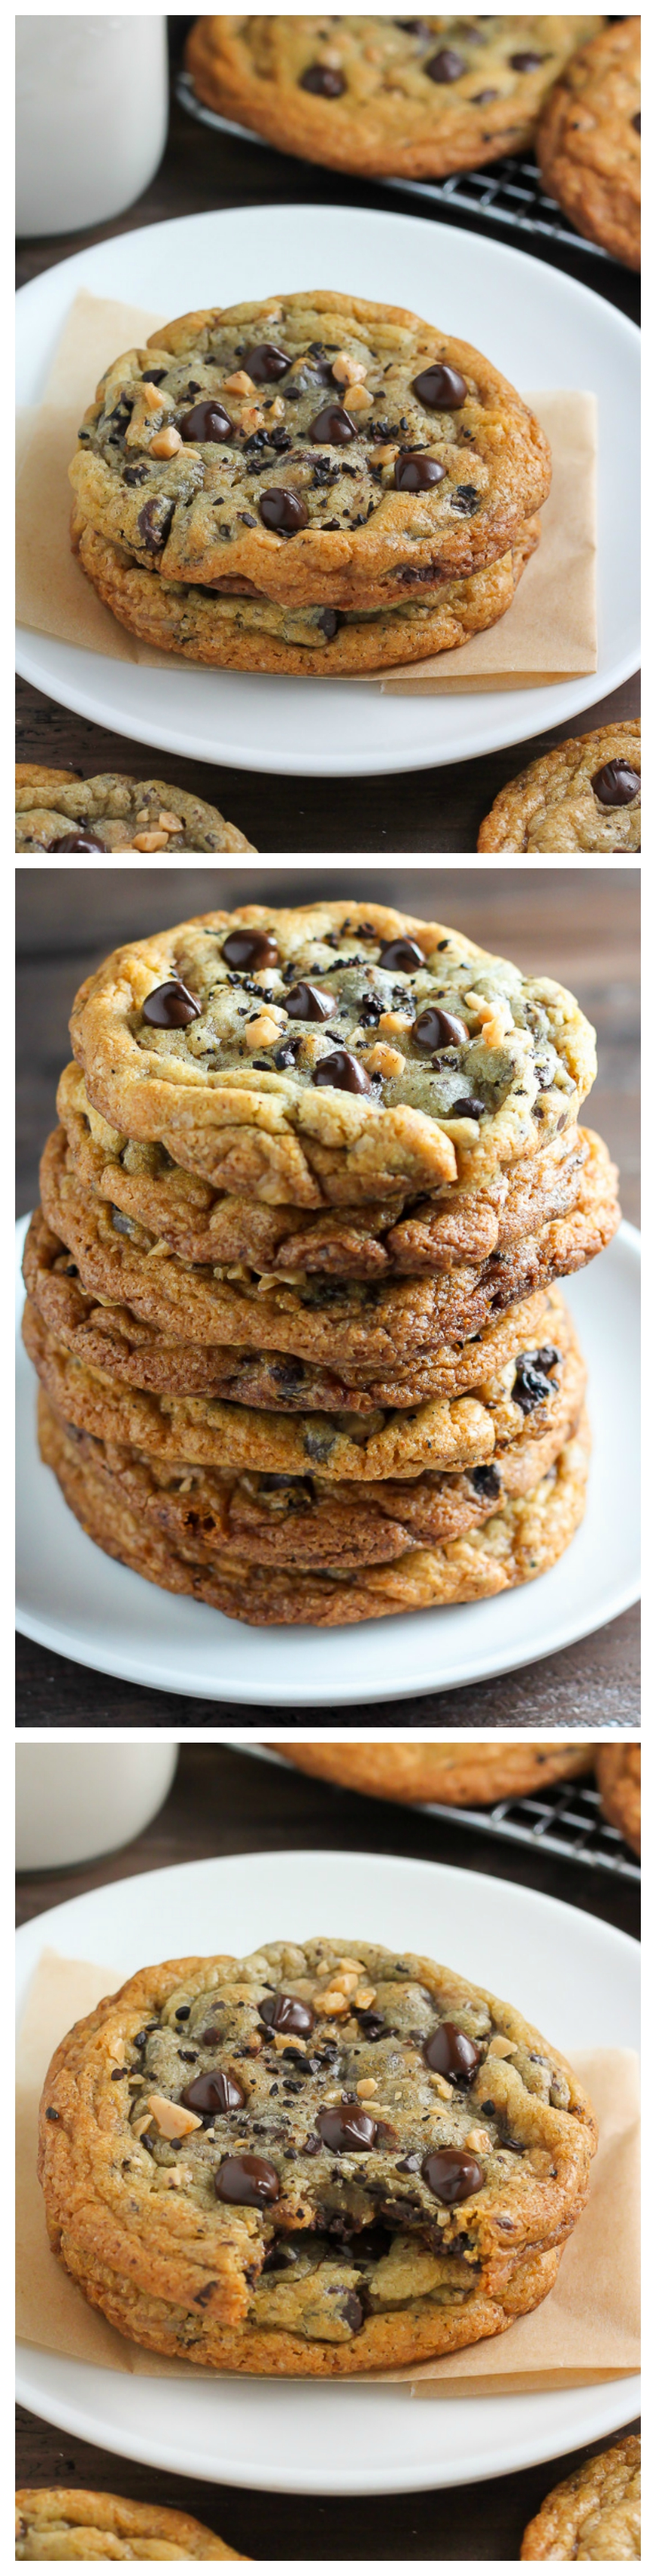 Espresso Toffee Chocolate Chip Cookies - Baker by Nature